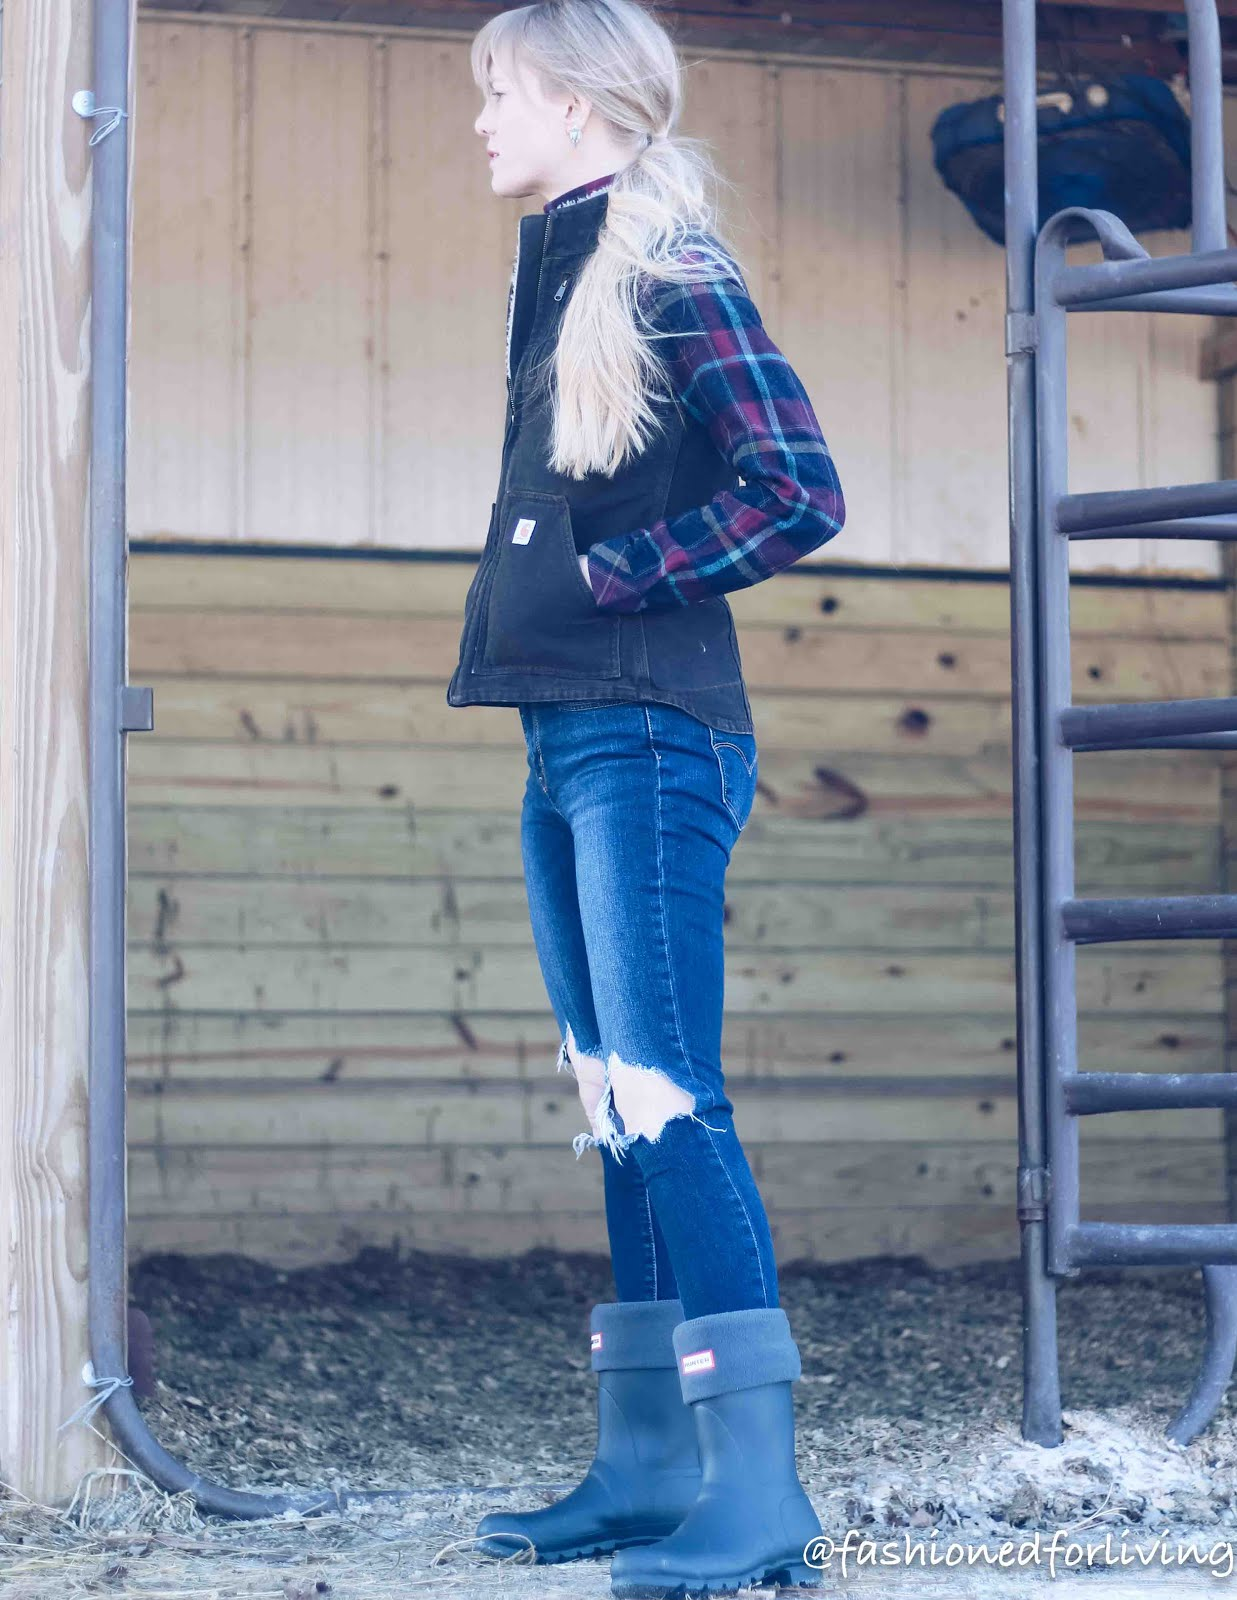 womens carhartt vest outfit with jeans and rain boots